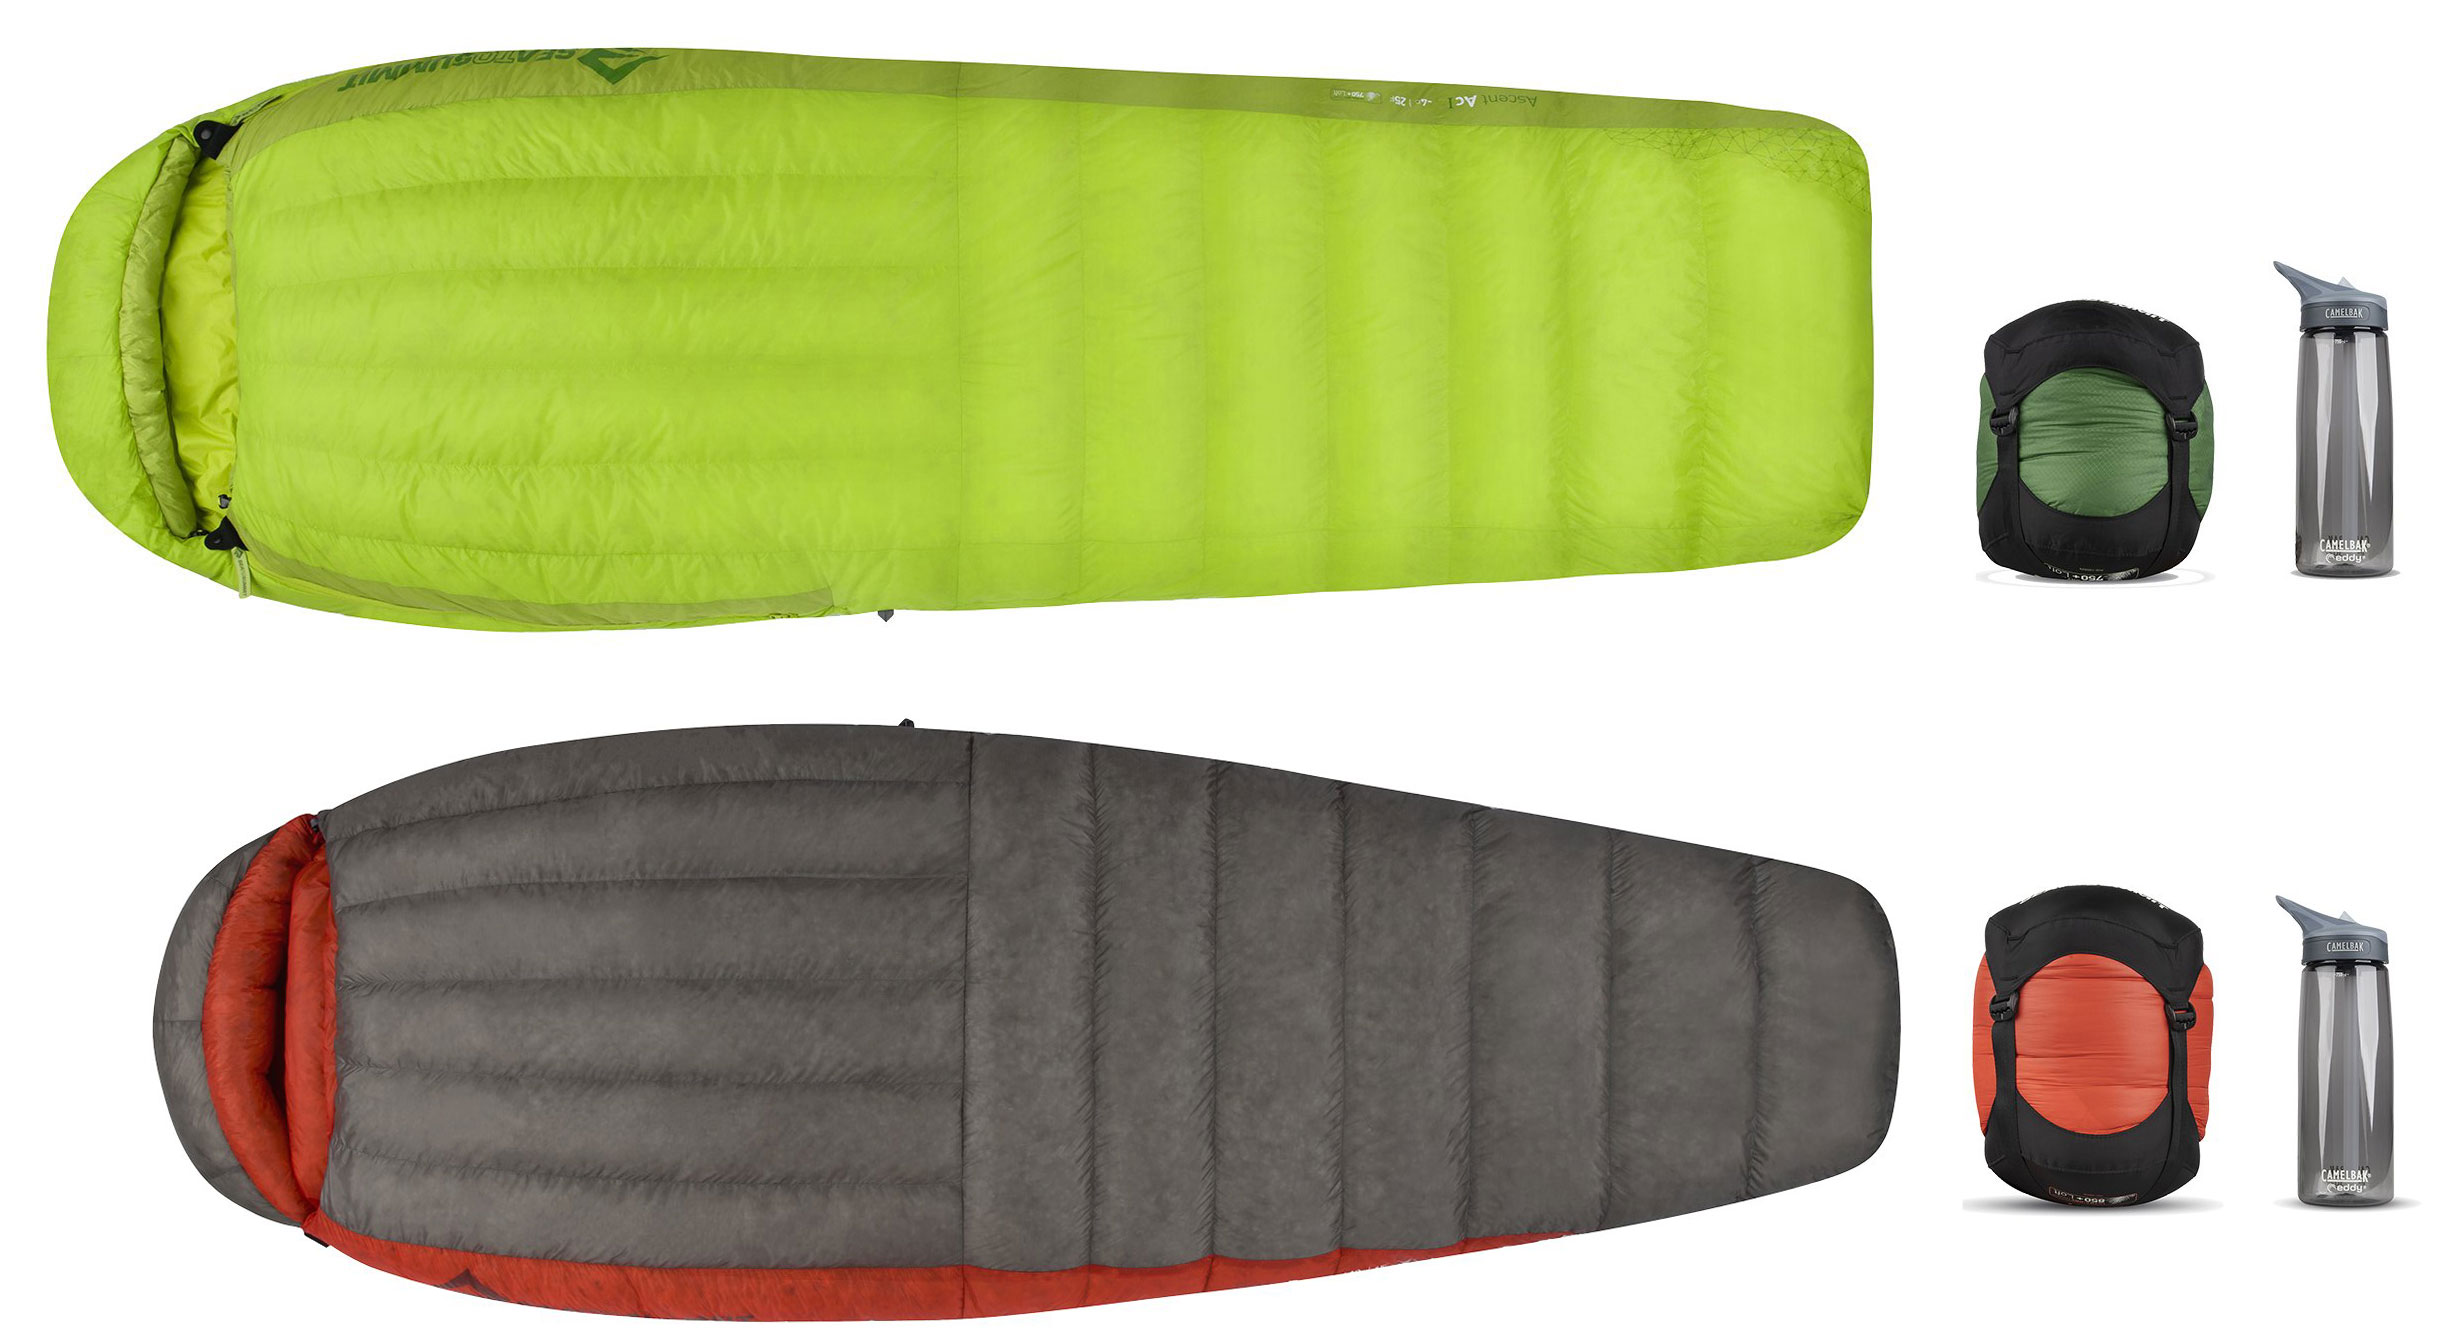 Sea to Summit Ascent and Flame Sleeping Bags